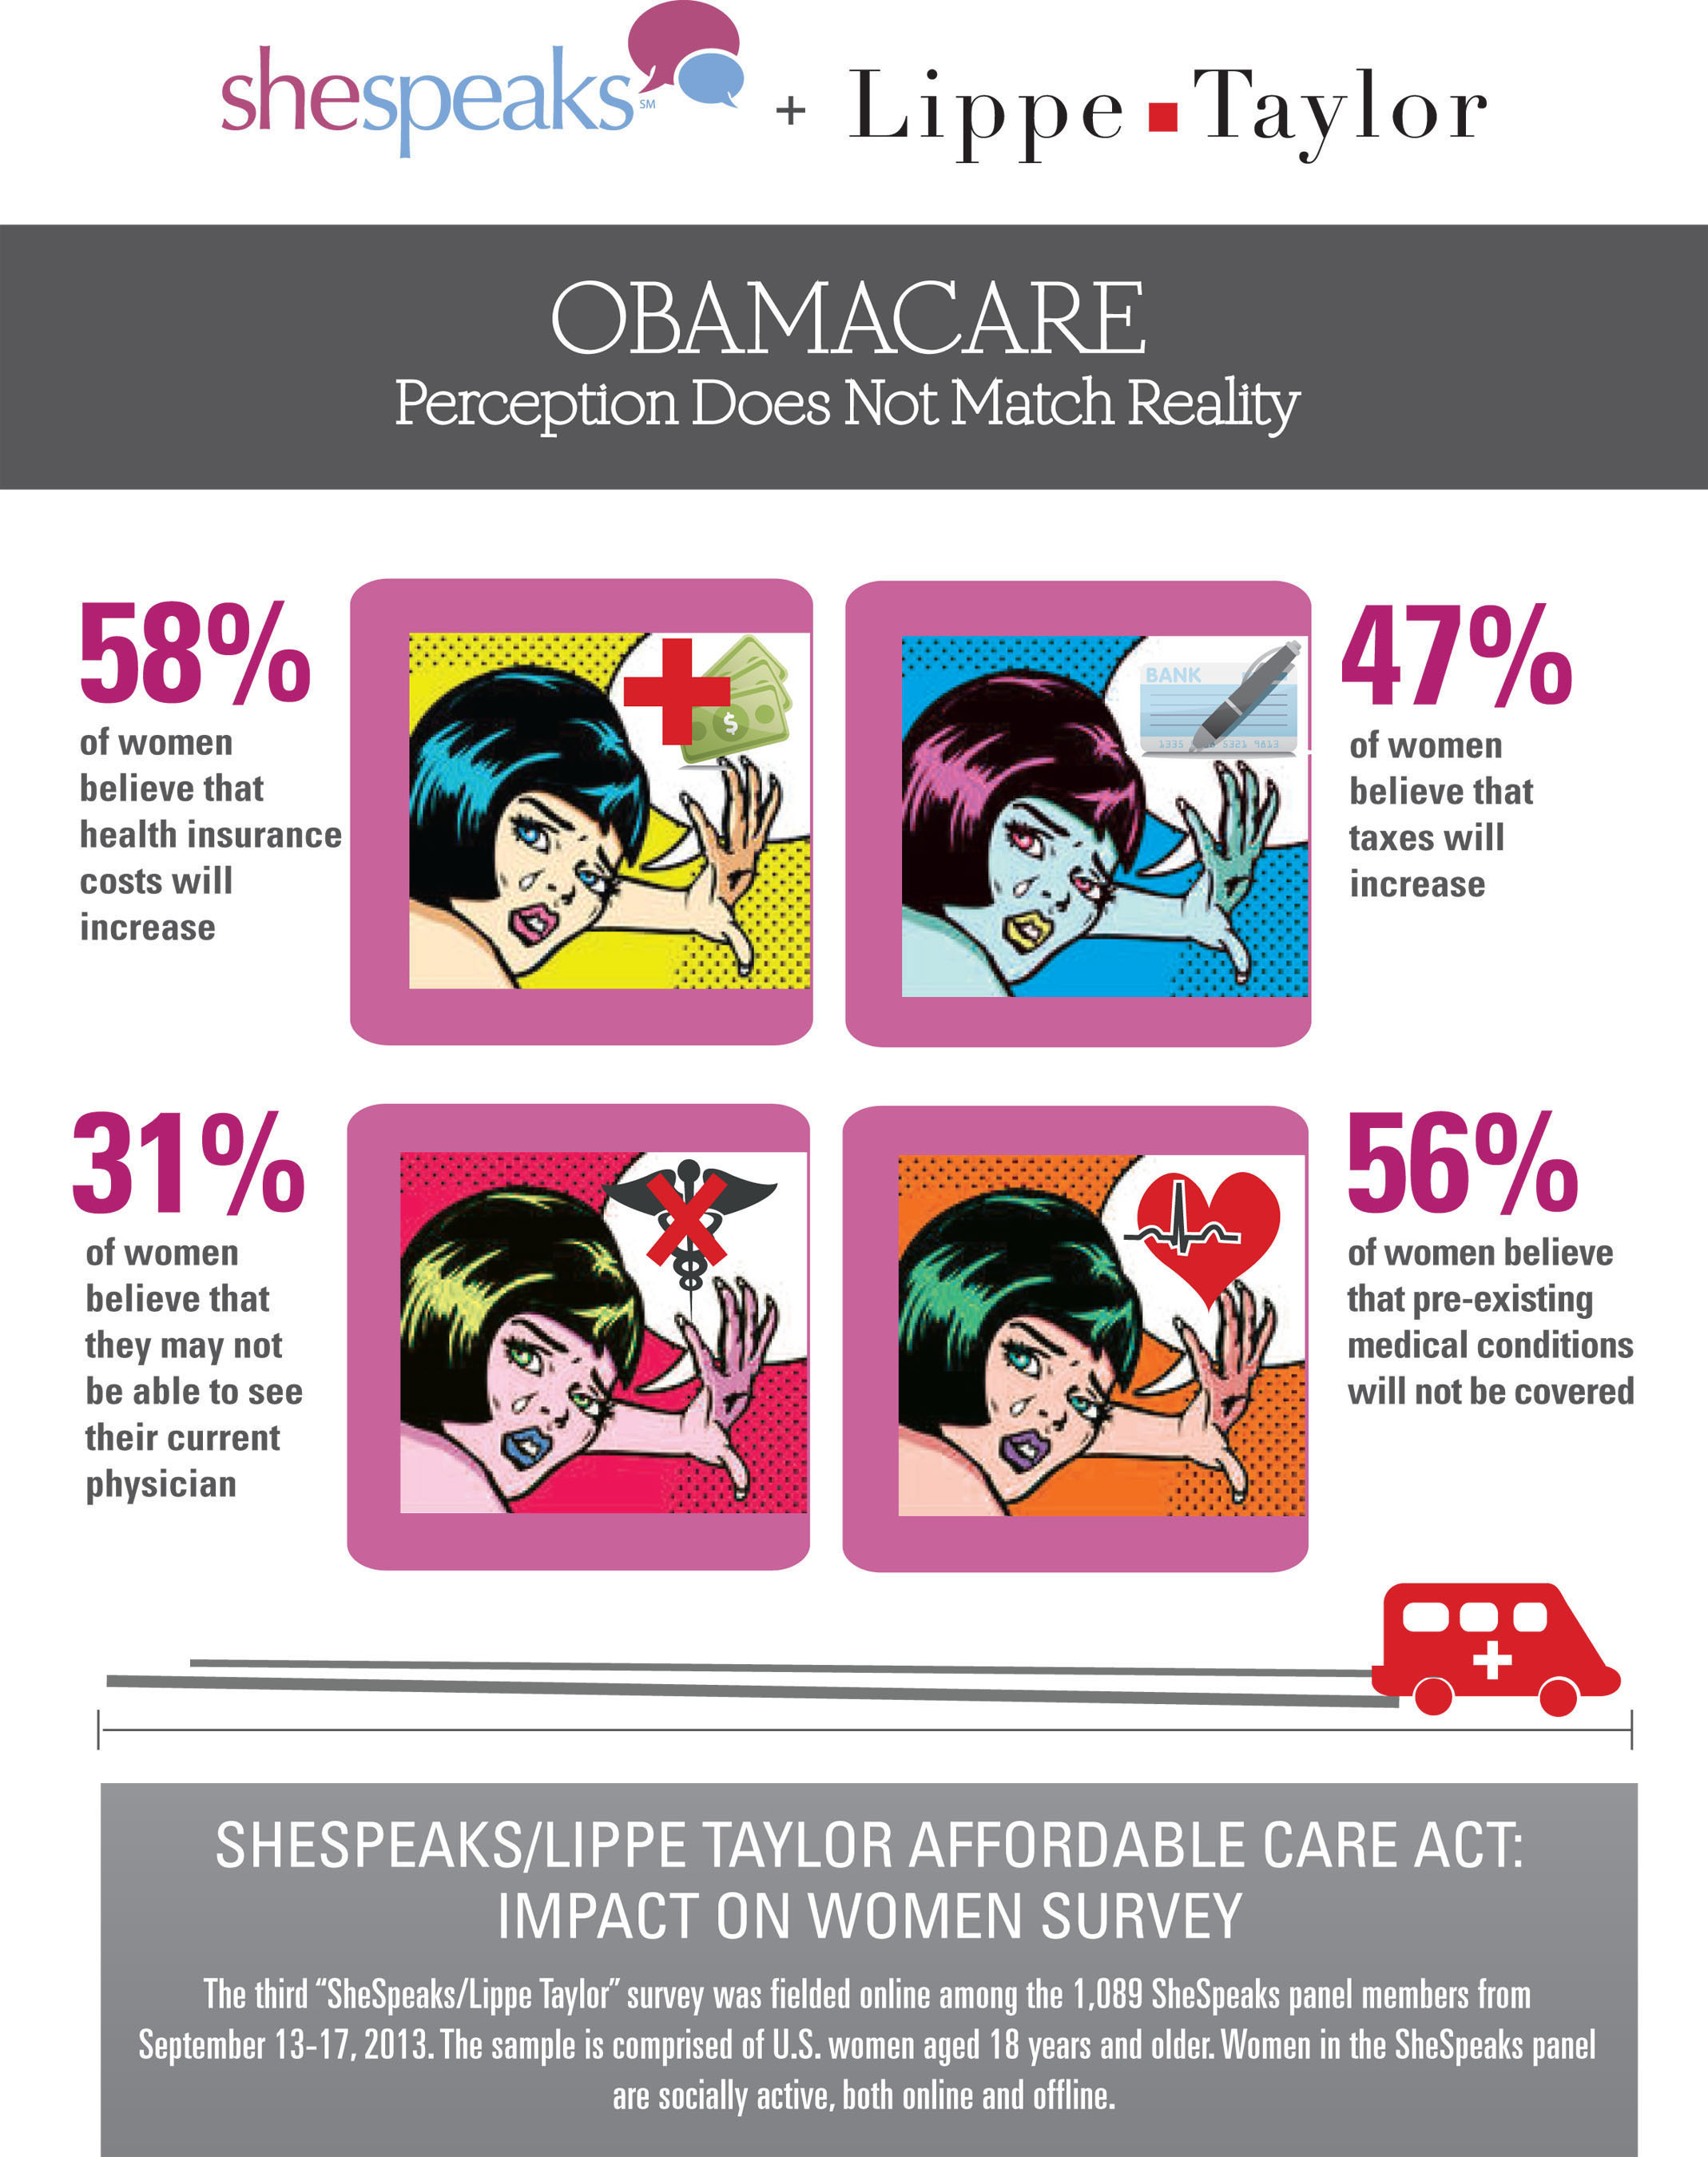 Research Shows Women Are Confused and Anxious About the Impact of Obamacare on Their Lives